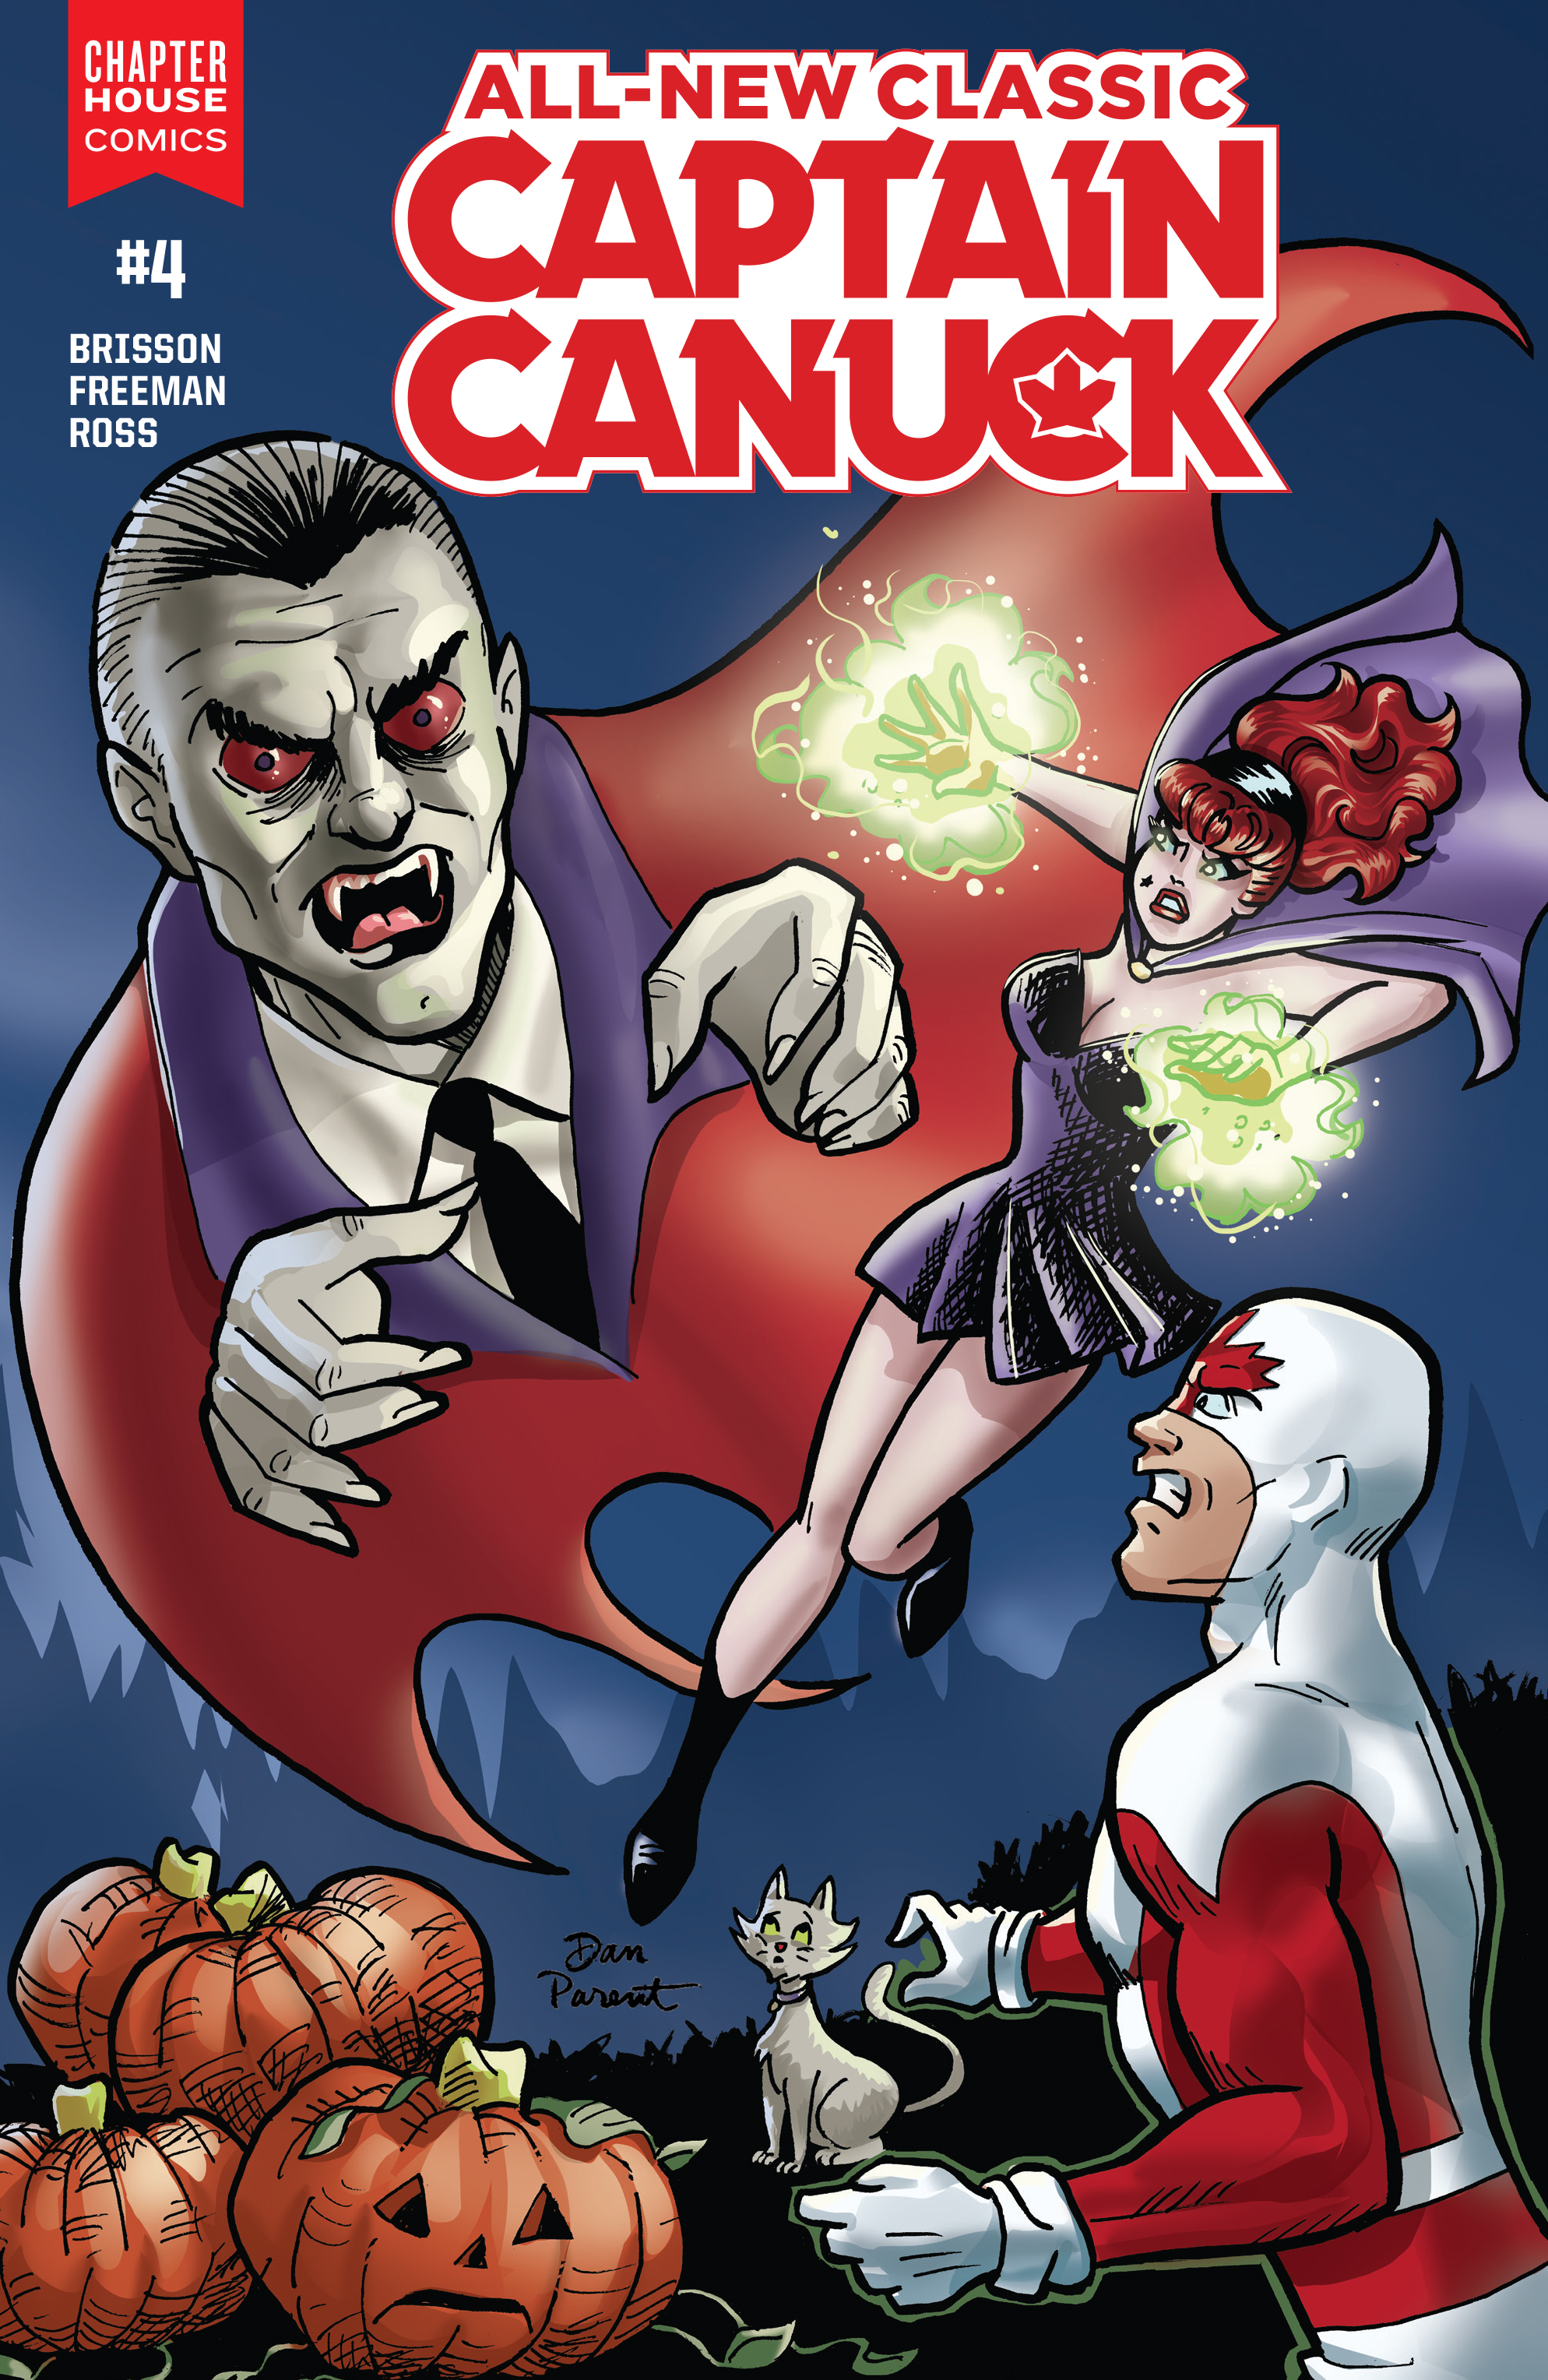 Read online All-New Classic Captain Canuck comic -  Issue #4 - 2